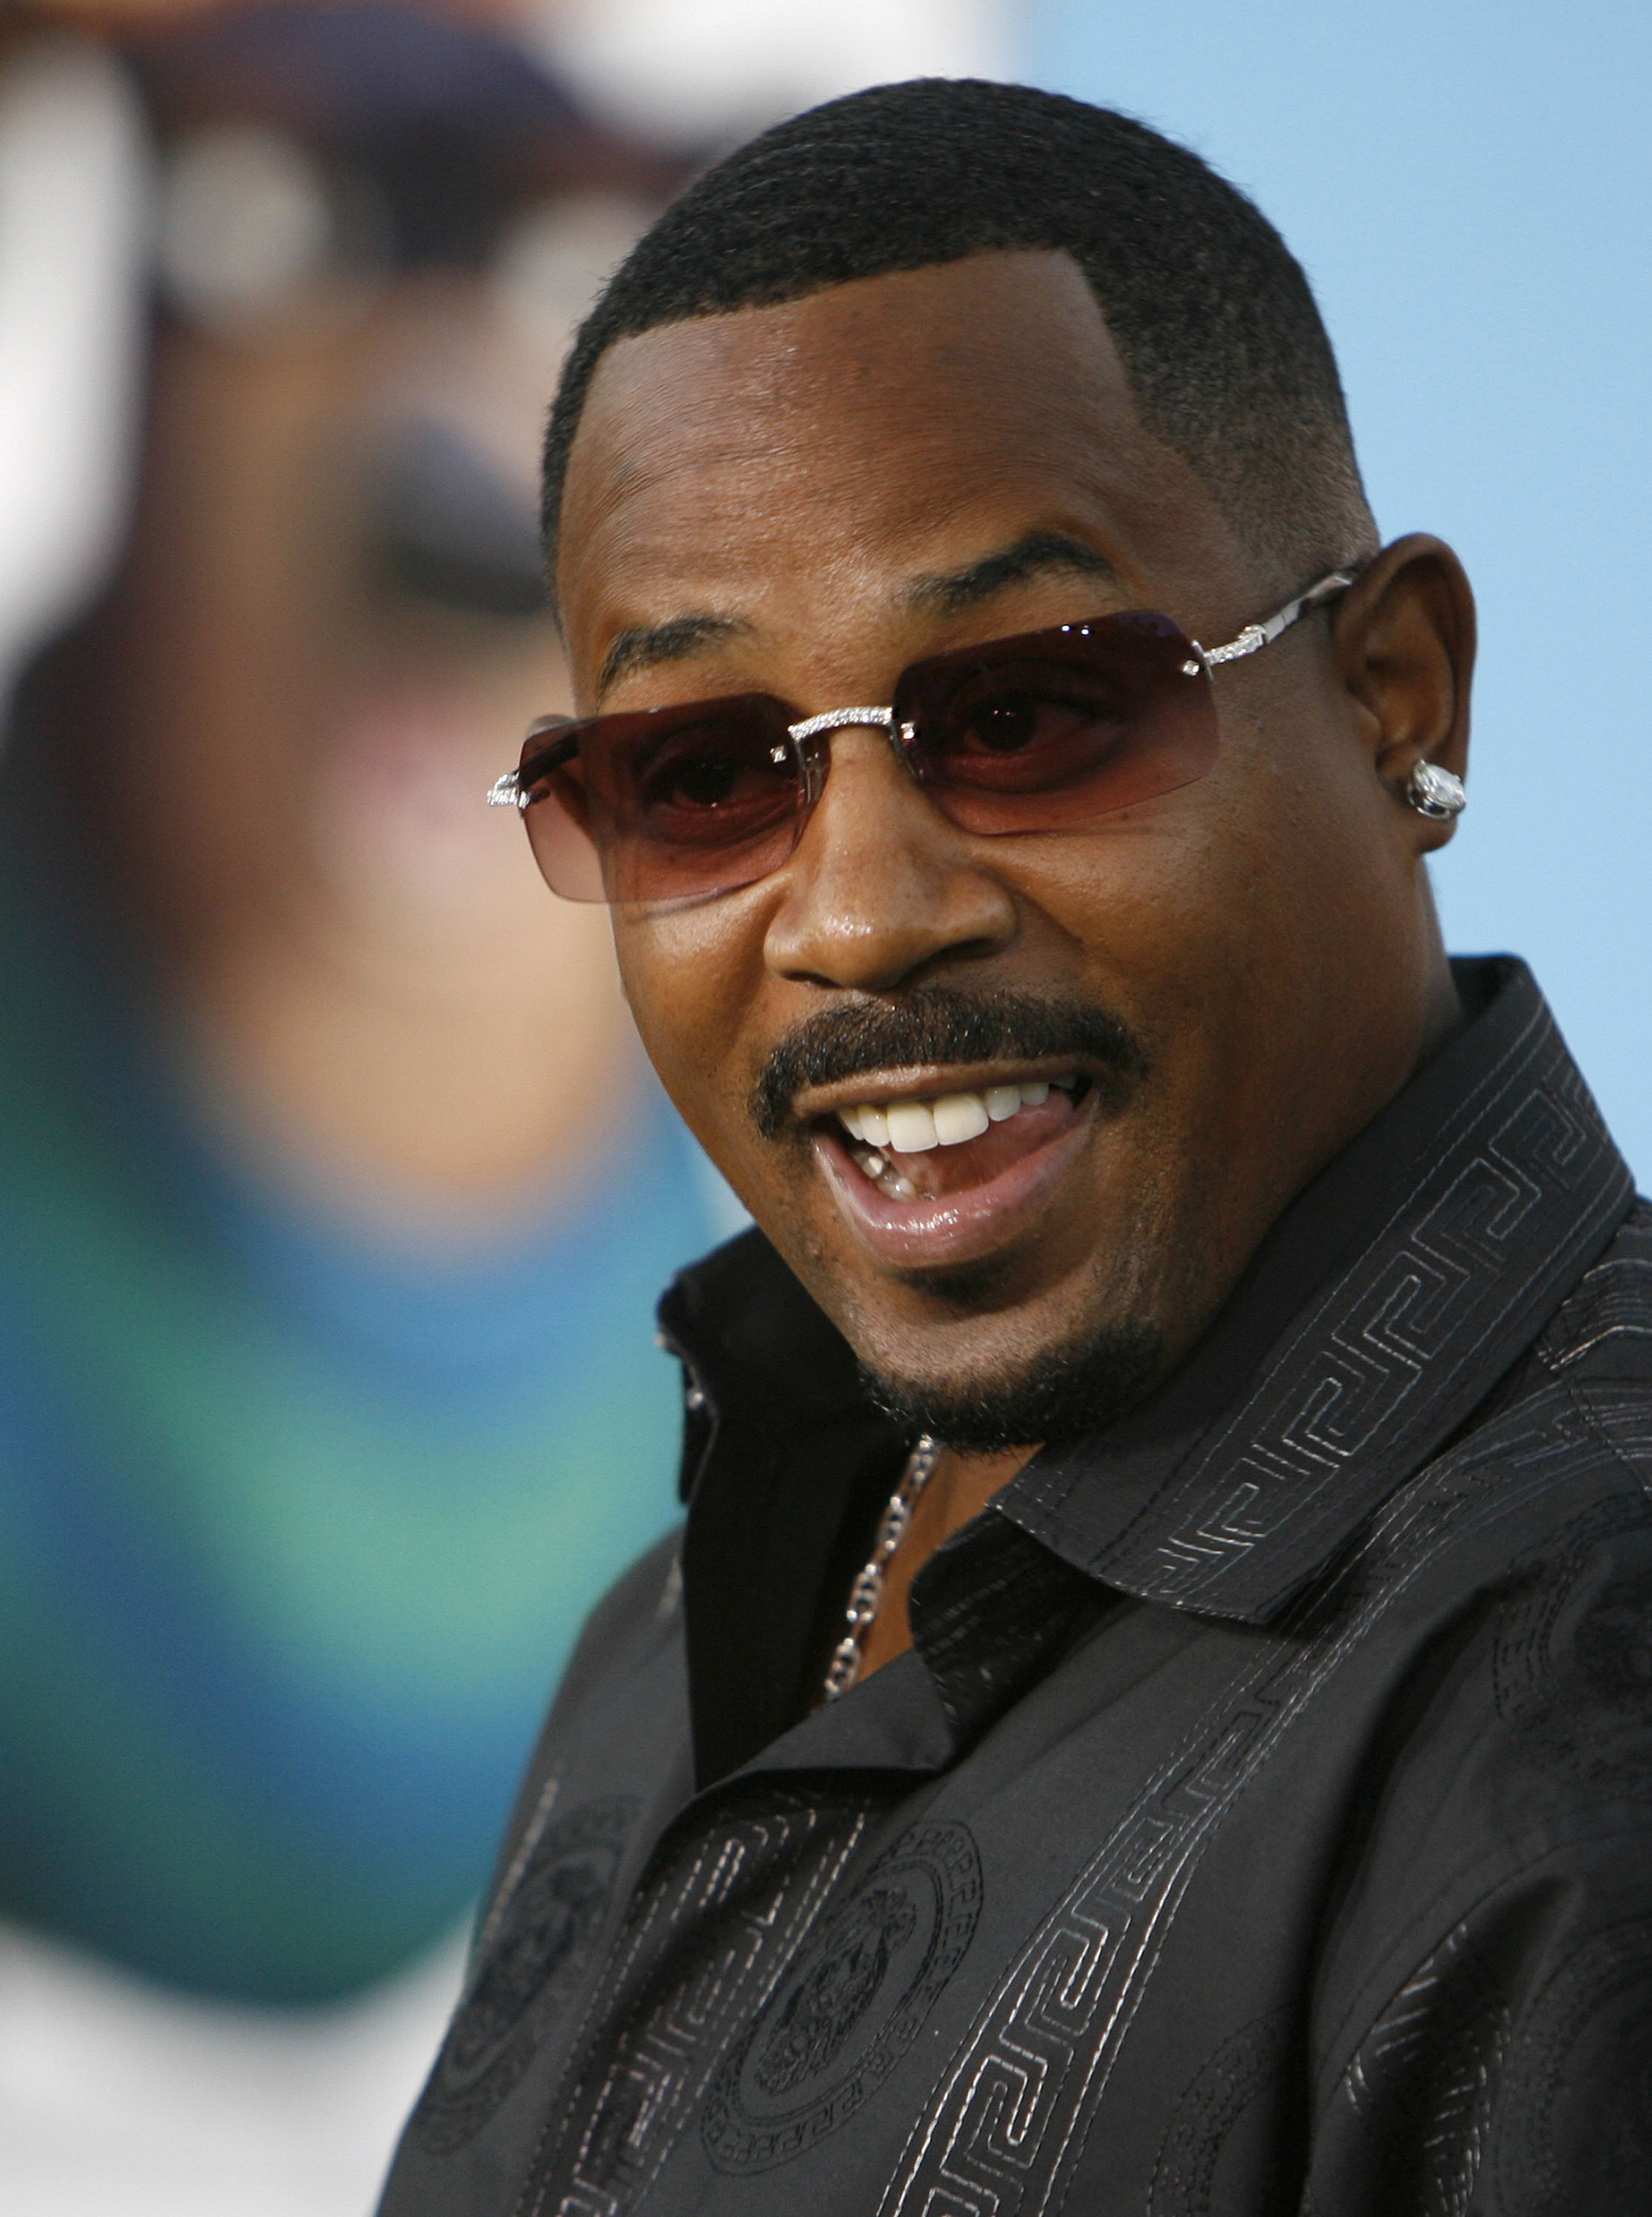 Martin Lawrence images Martin Lawrence HD wallpaper and background photos